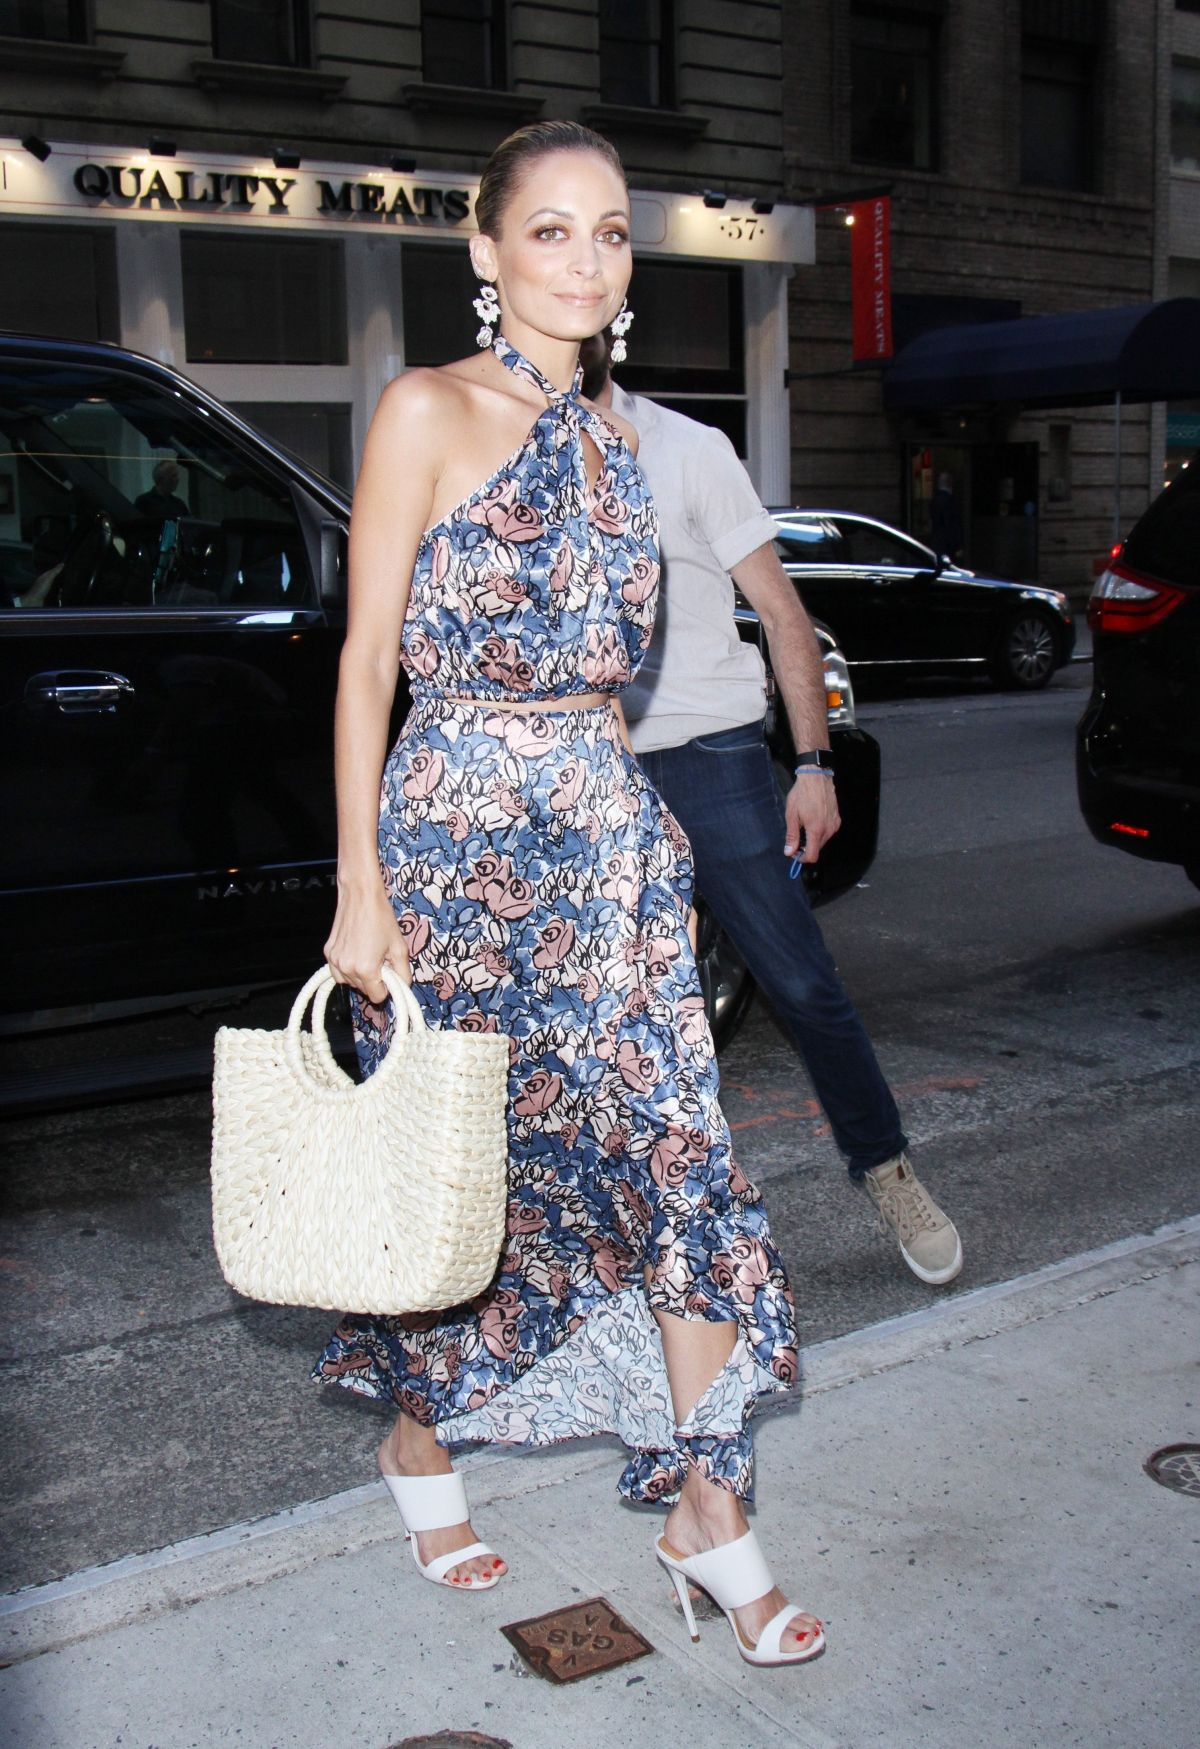 Nicole Richie At Nbc Summer Tail Party In New York 06 20 2017